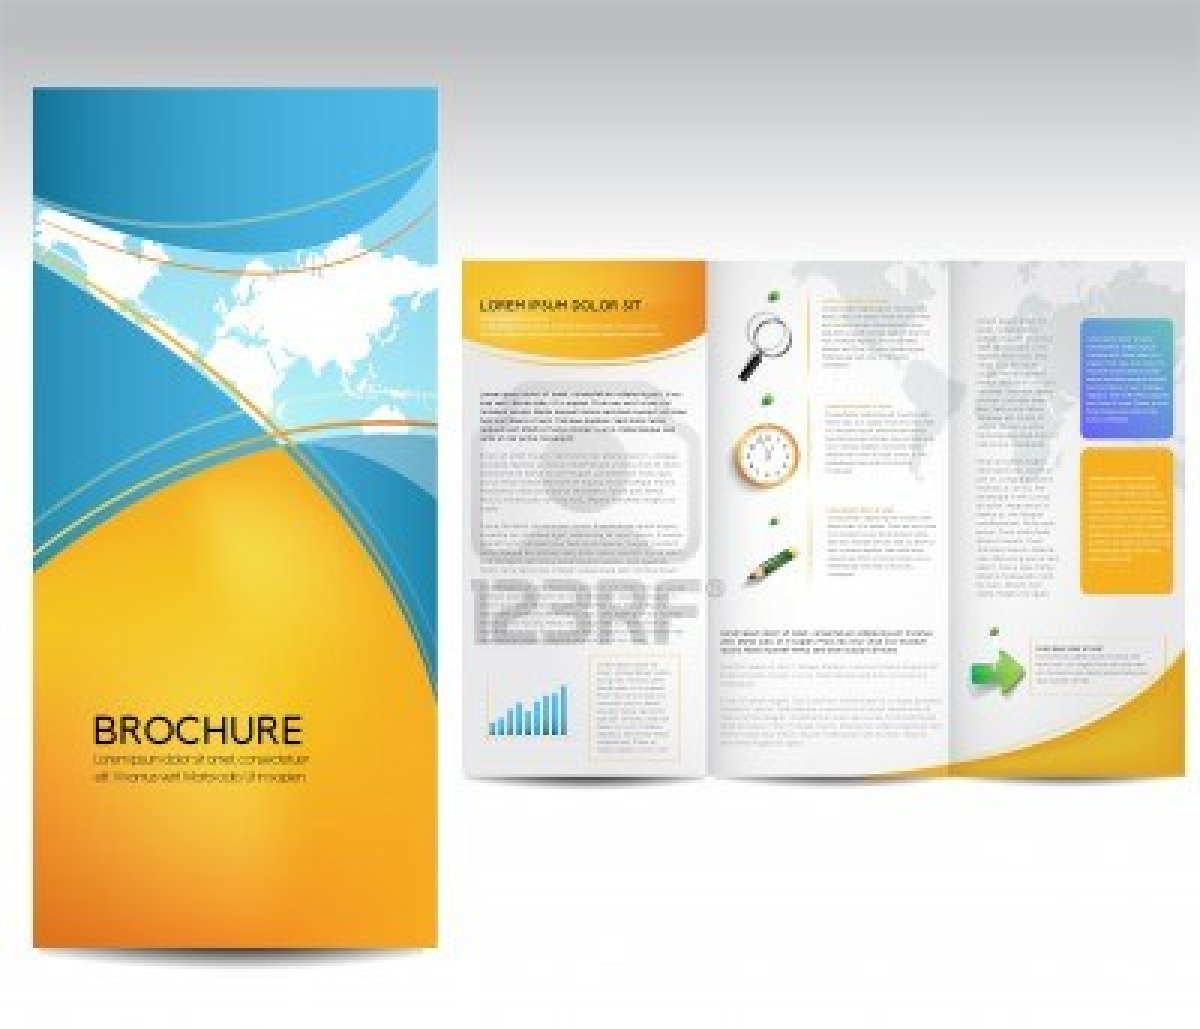 Microsoft Word Brochure Templates Free Download receipt templet – Download Brochure Templates for Microsoft Word